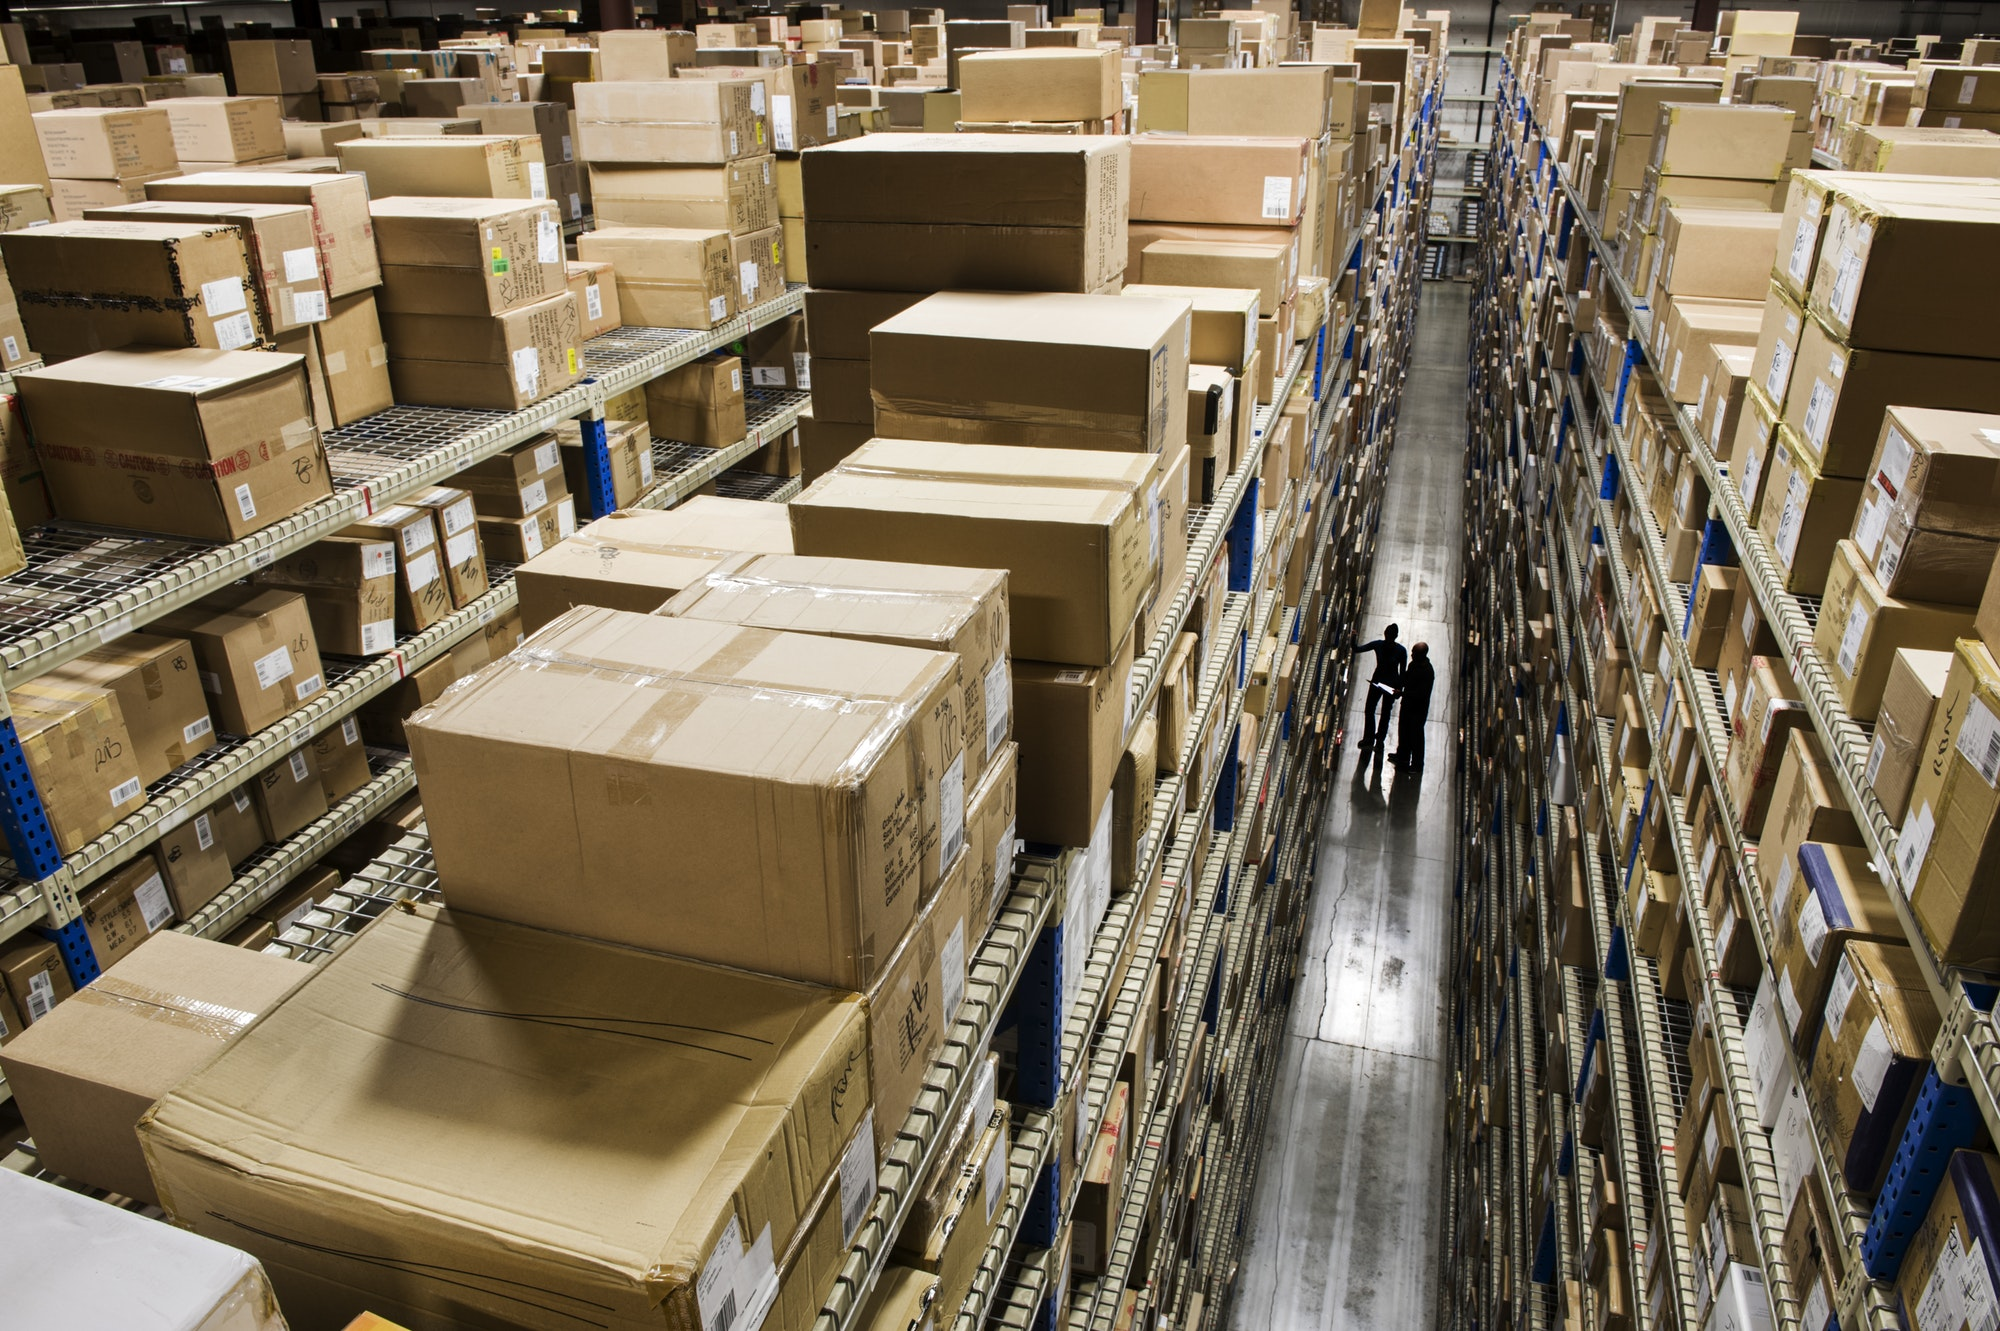 Looking down and over racks of products stored in boxes in a distribution warehouse.